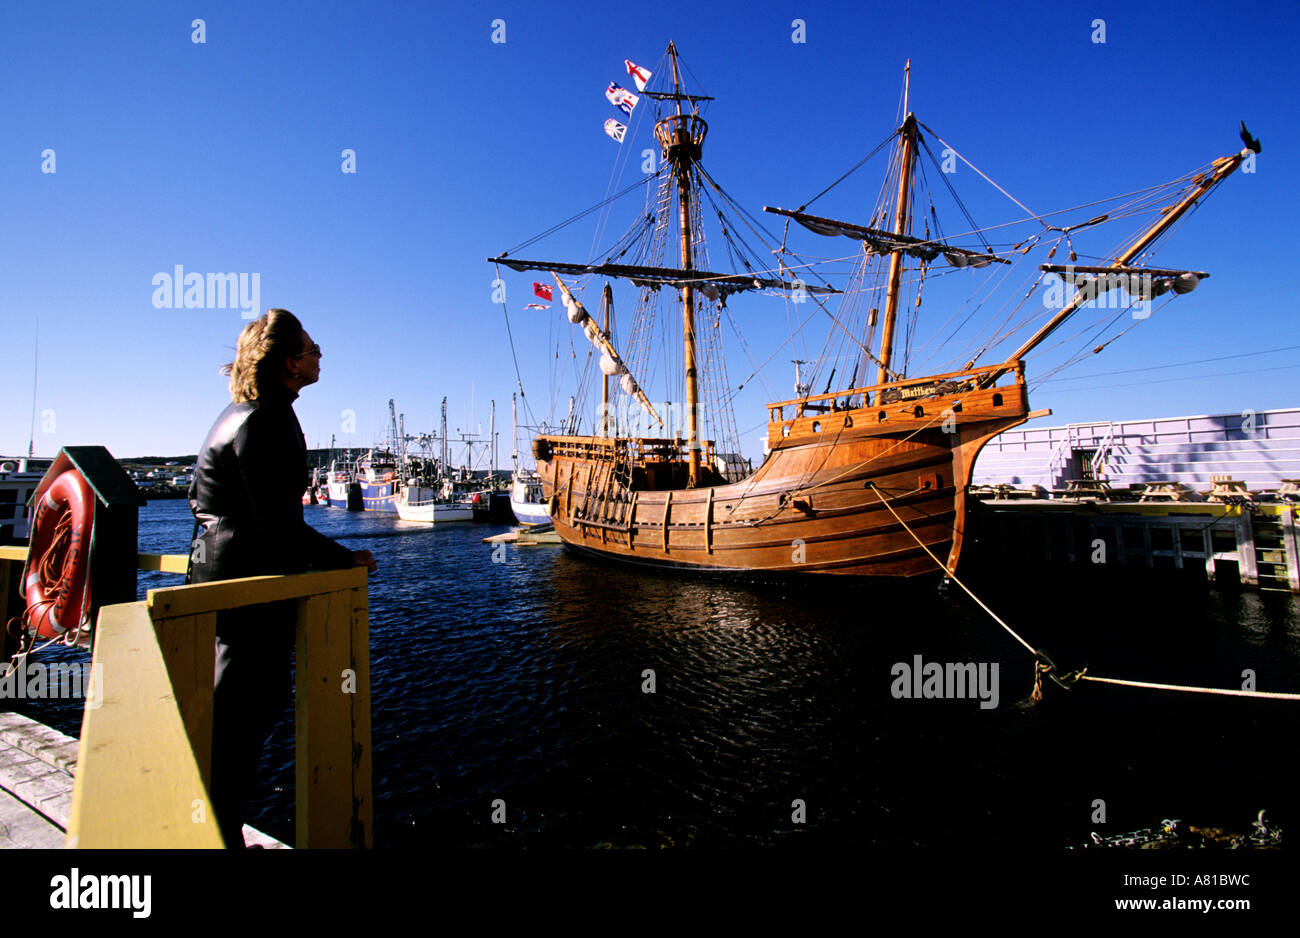 Canada, Newfoundland, Bonavista's harbour with its full-scale replica of the Matthew, John Cabot's famous caravel - Stock Image